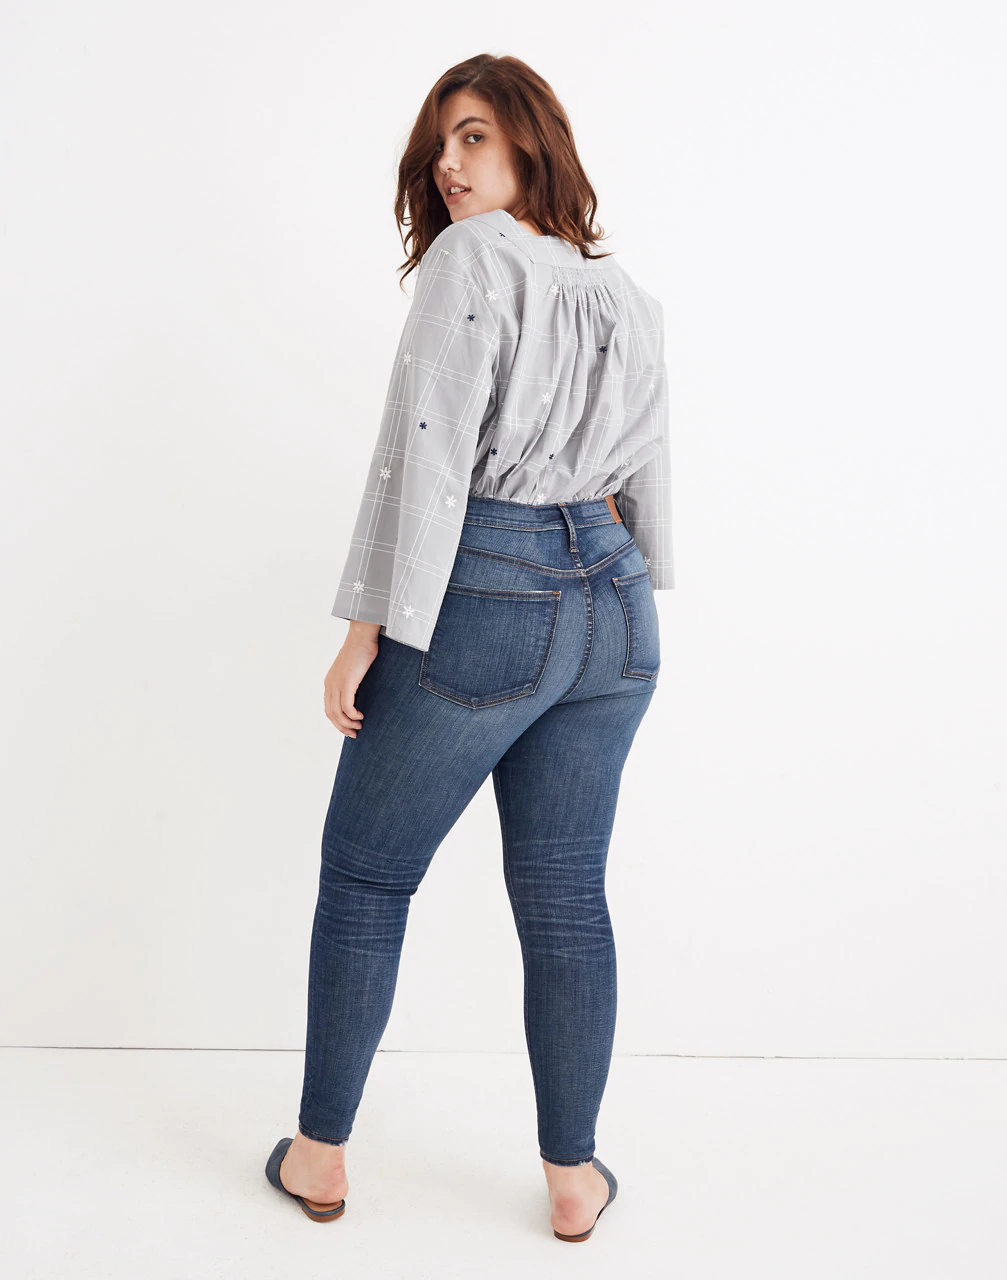 bf1d85213ae 15 Plus-Size Brands Our Readers Love  theeverygirl